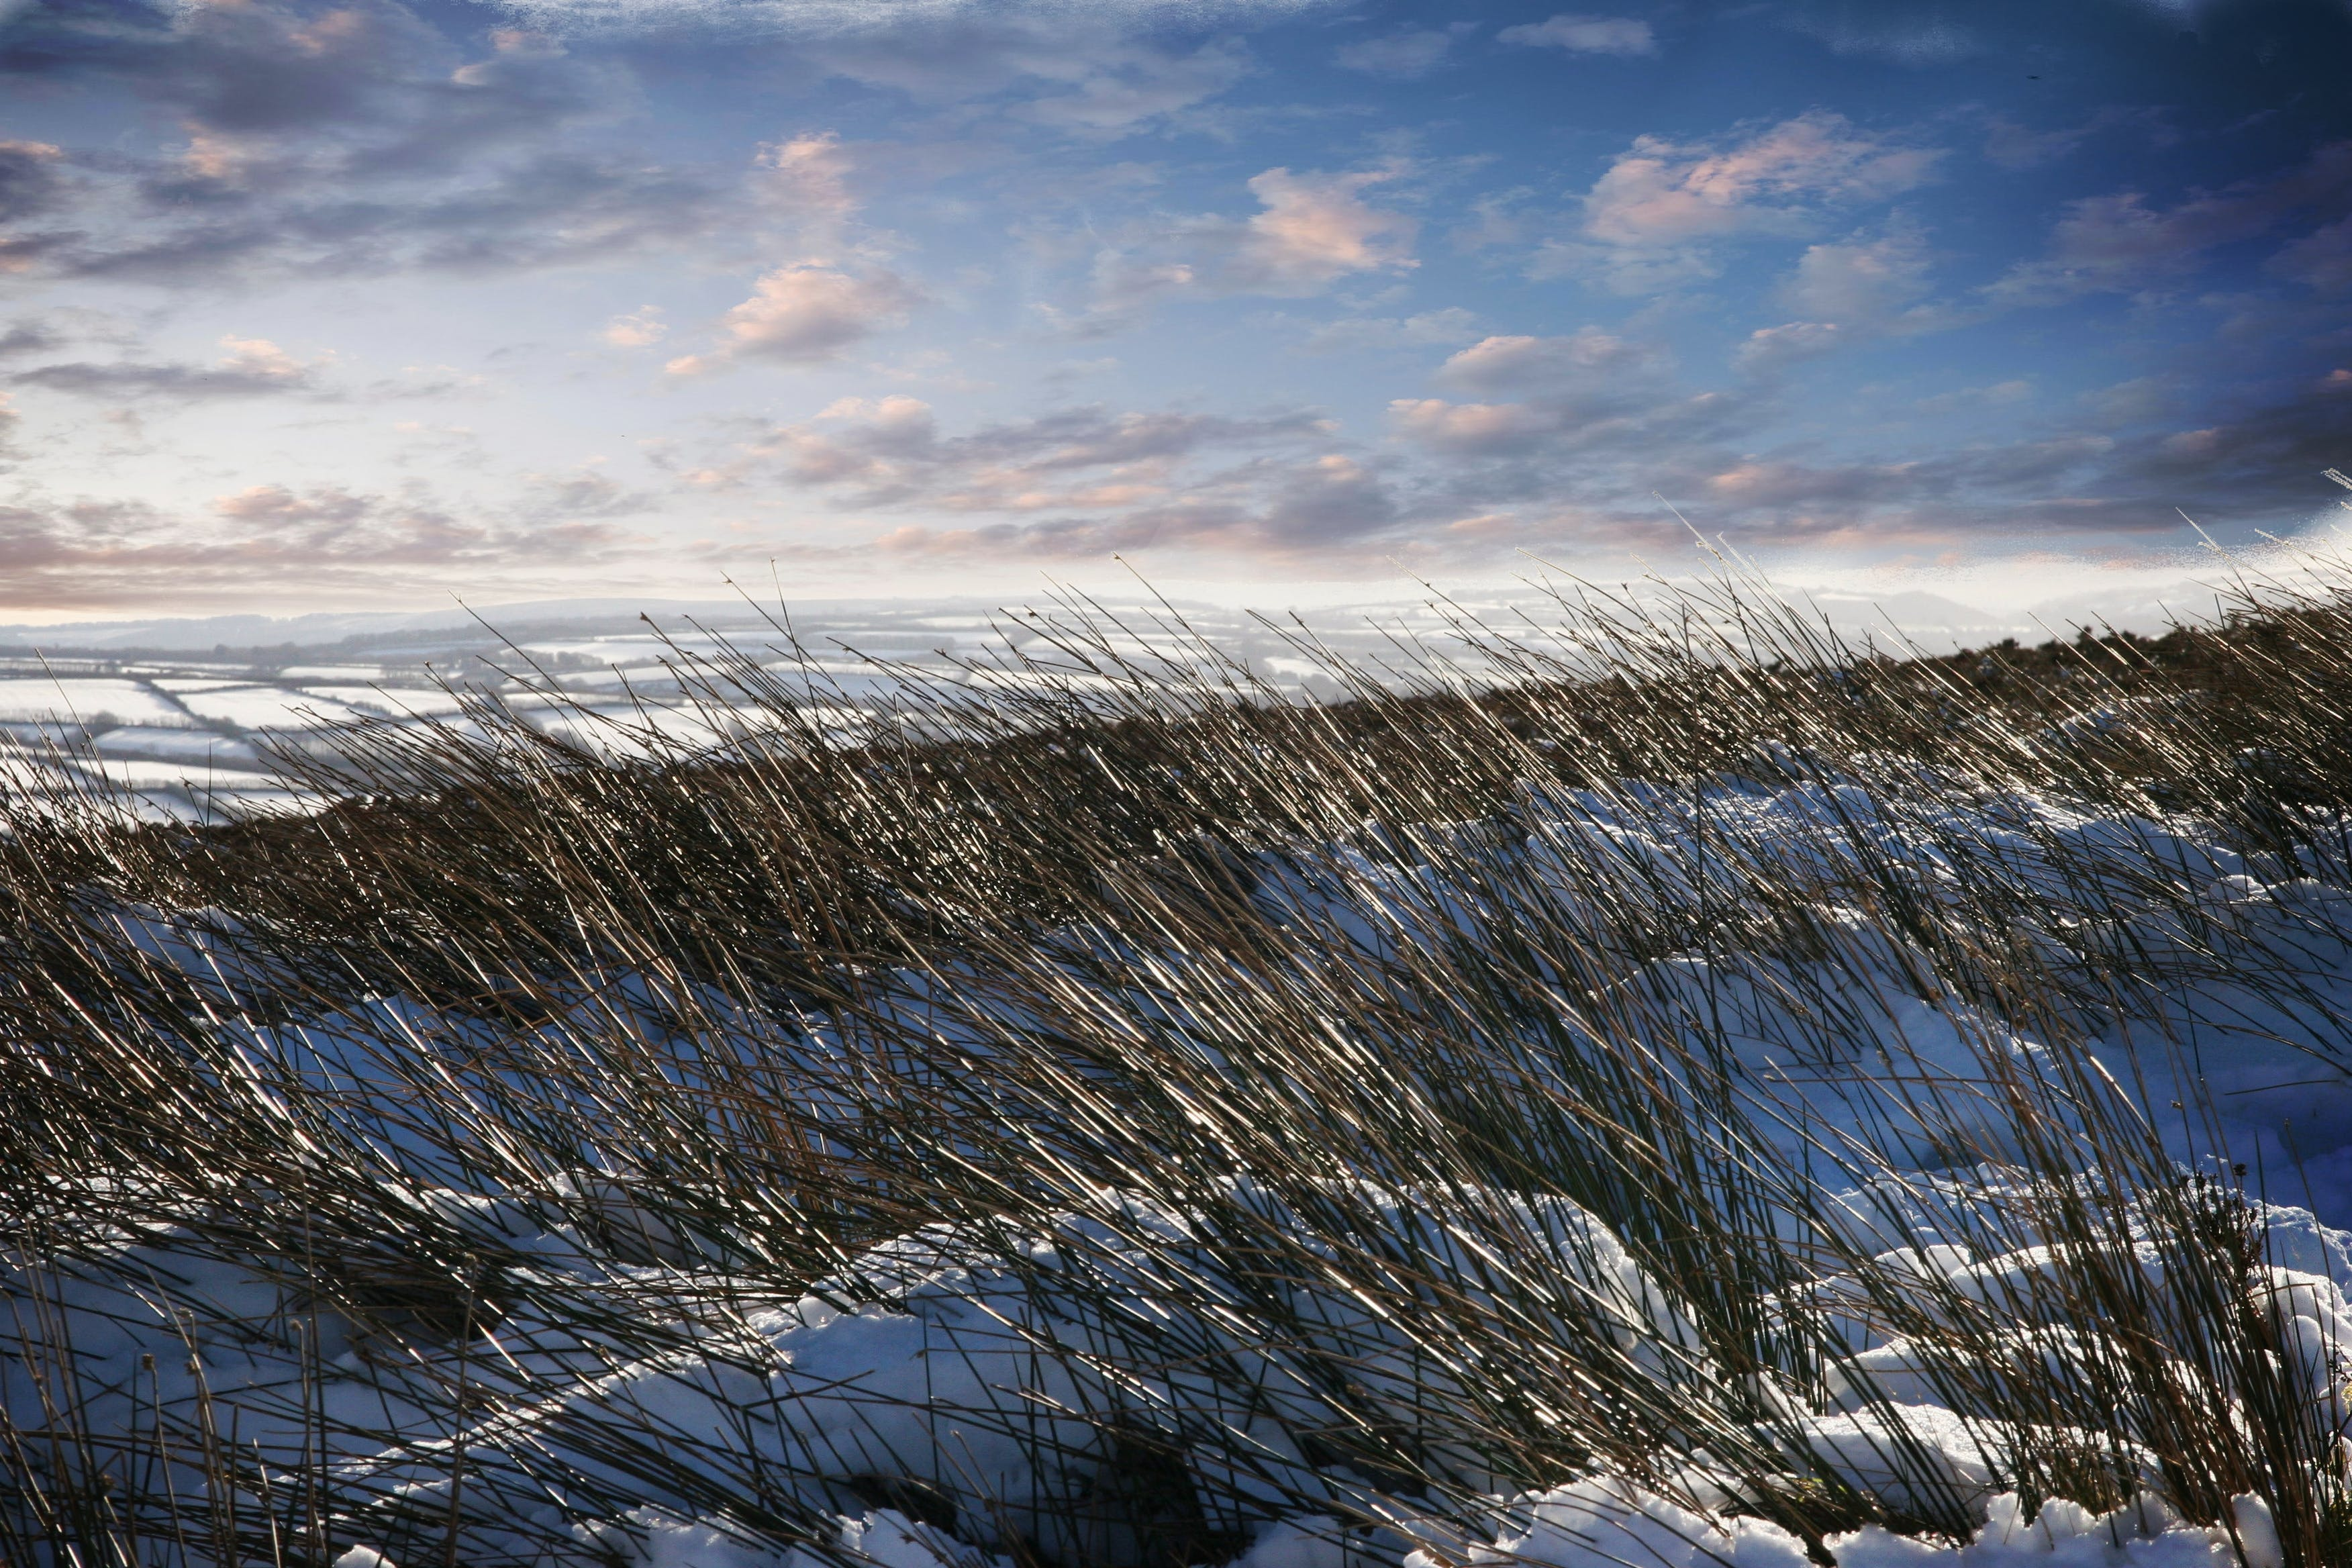 Free stock photo of #Exmoor in Winter